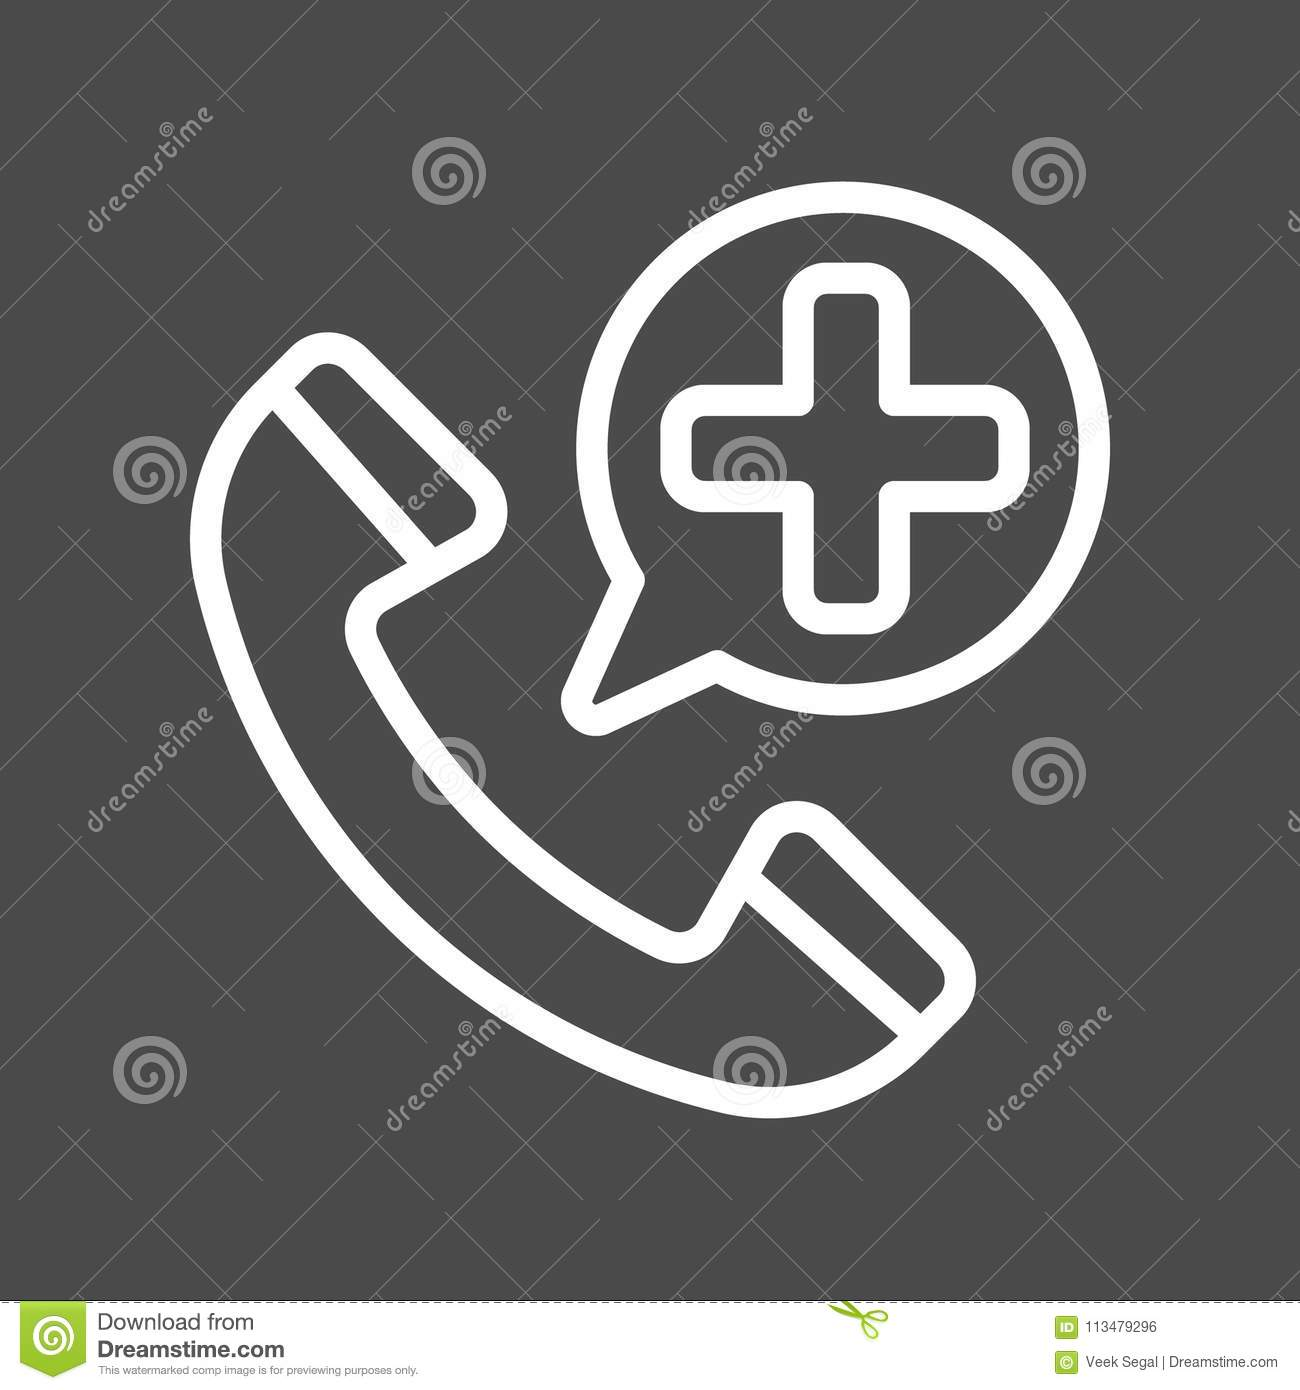 Emergency Call Filled Outline Icon, Medicine And Healthcare